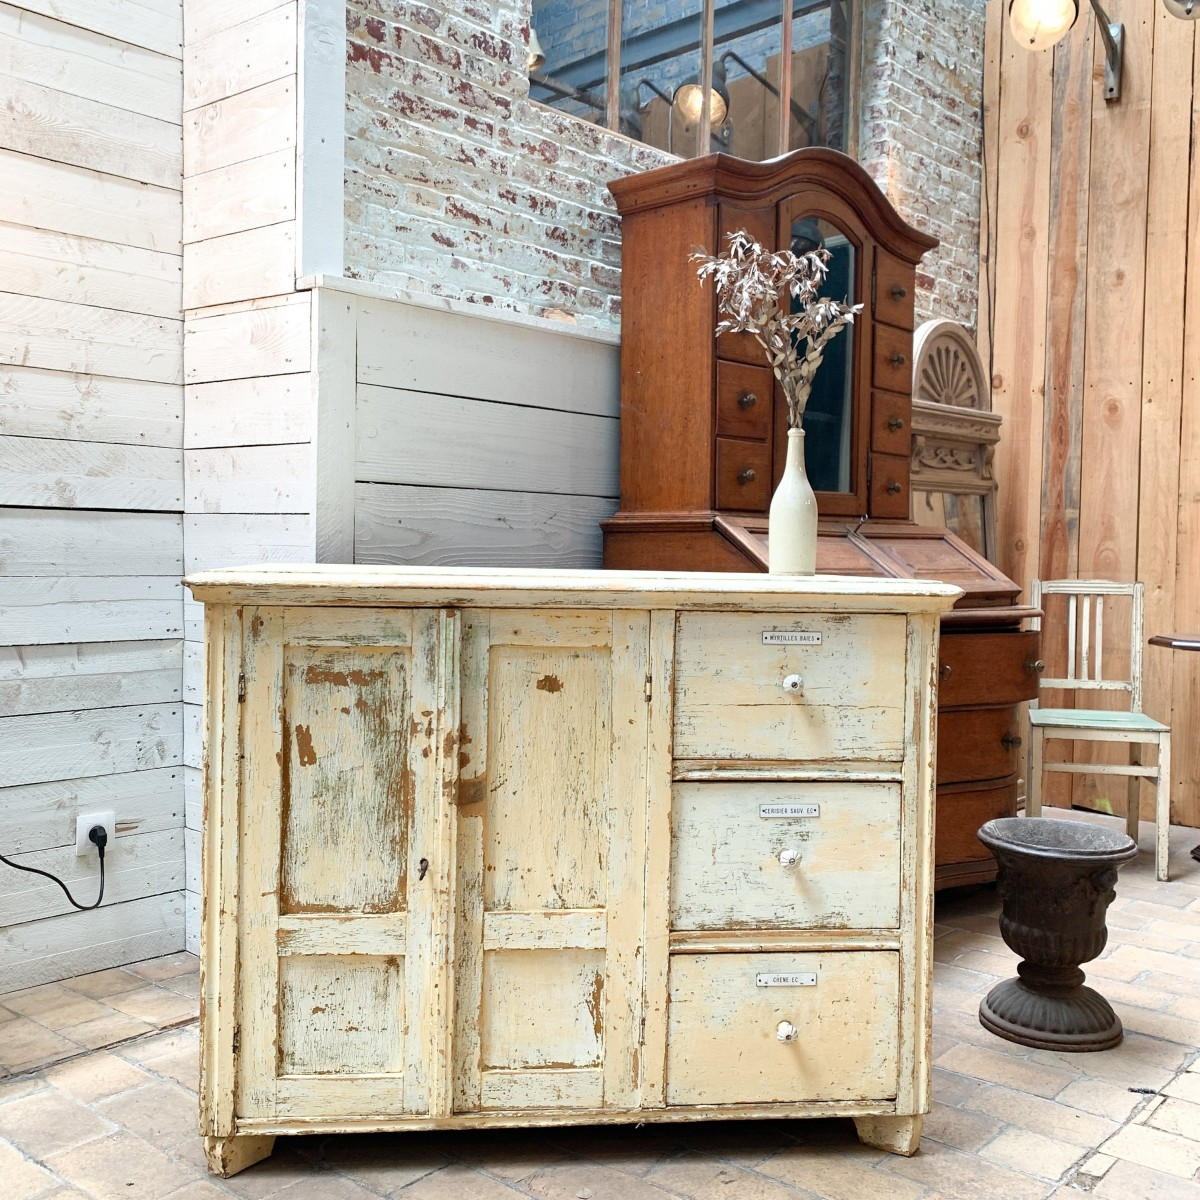 French wooden shop furniture